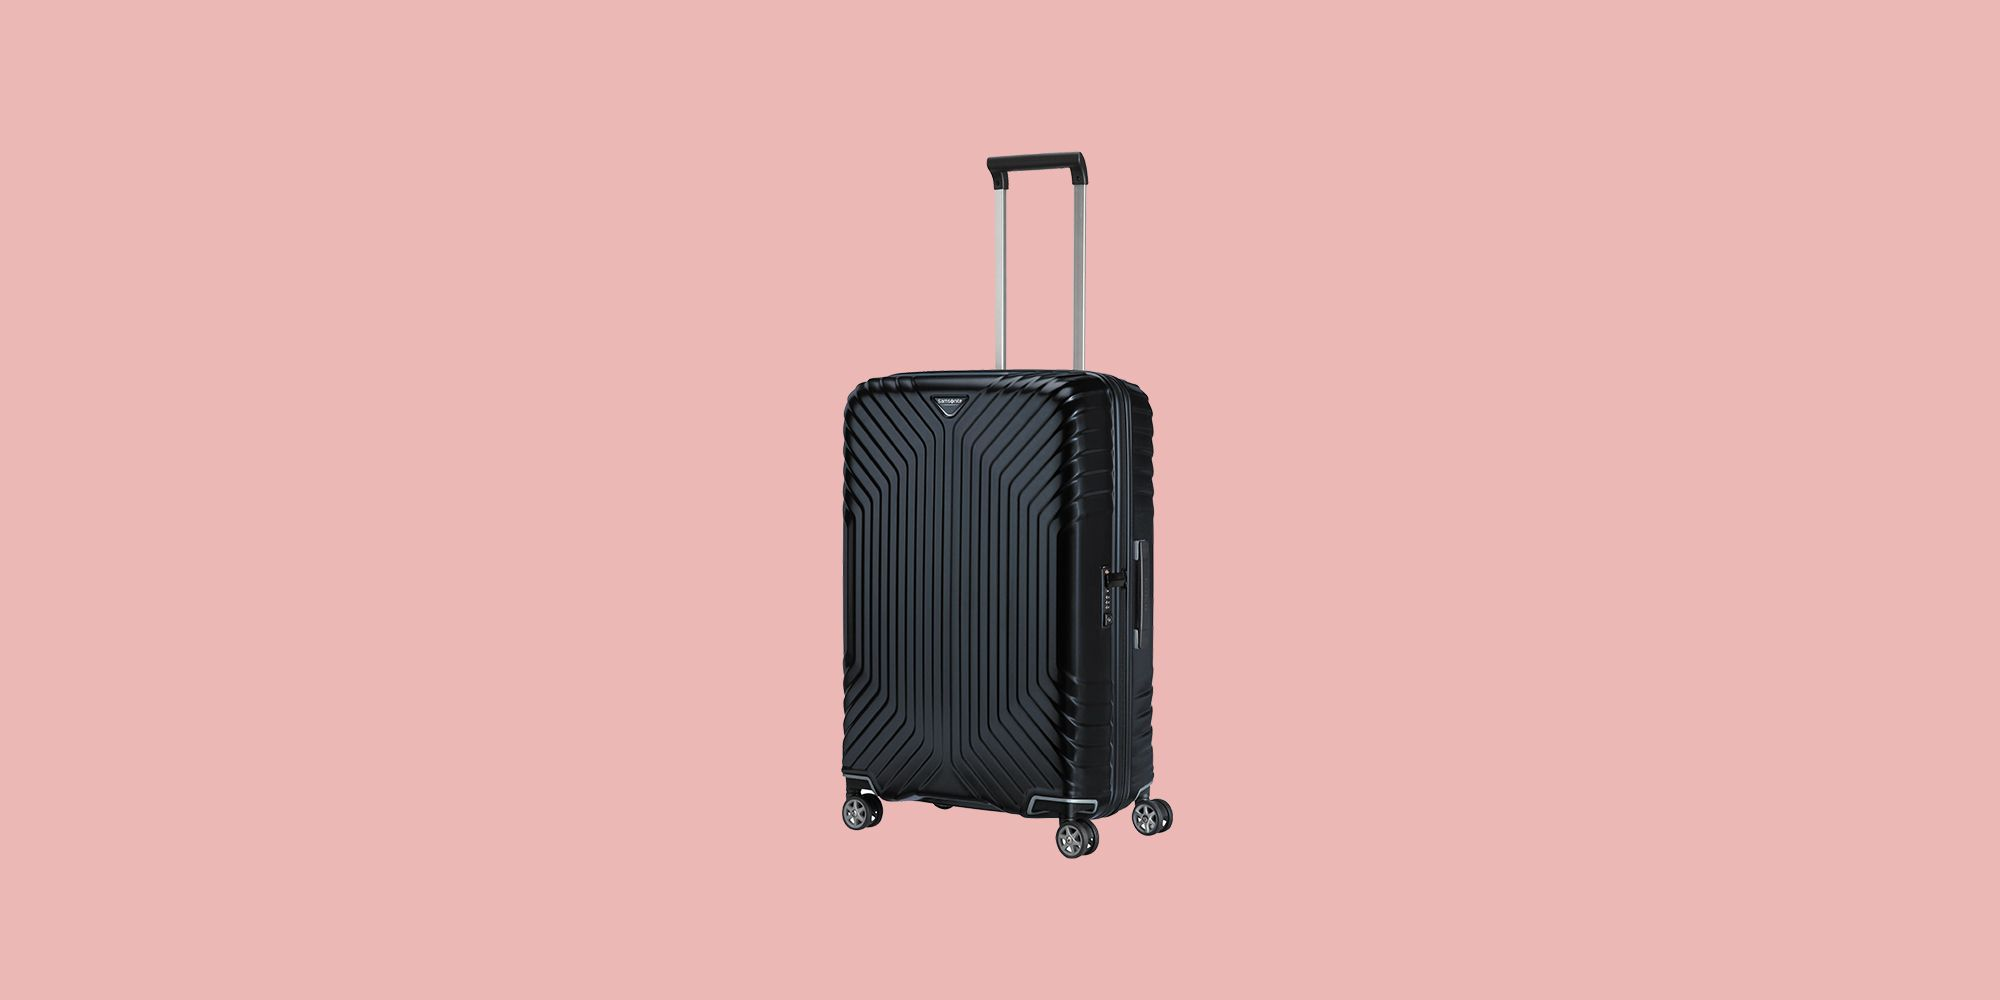 d862c0d45 The 10 best cabin cases - best travel luggage for a weekend away